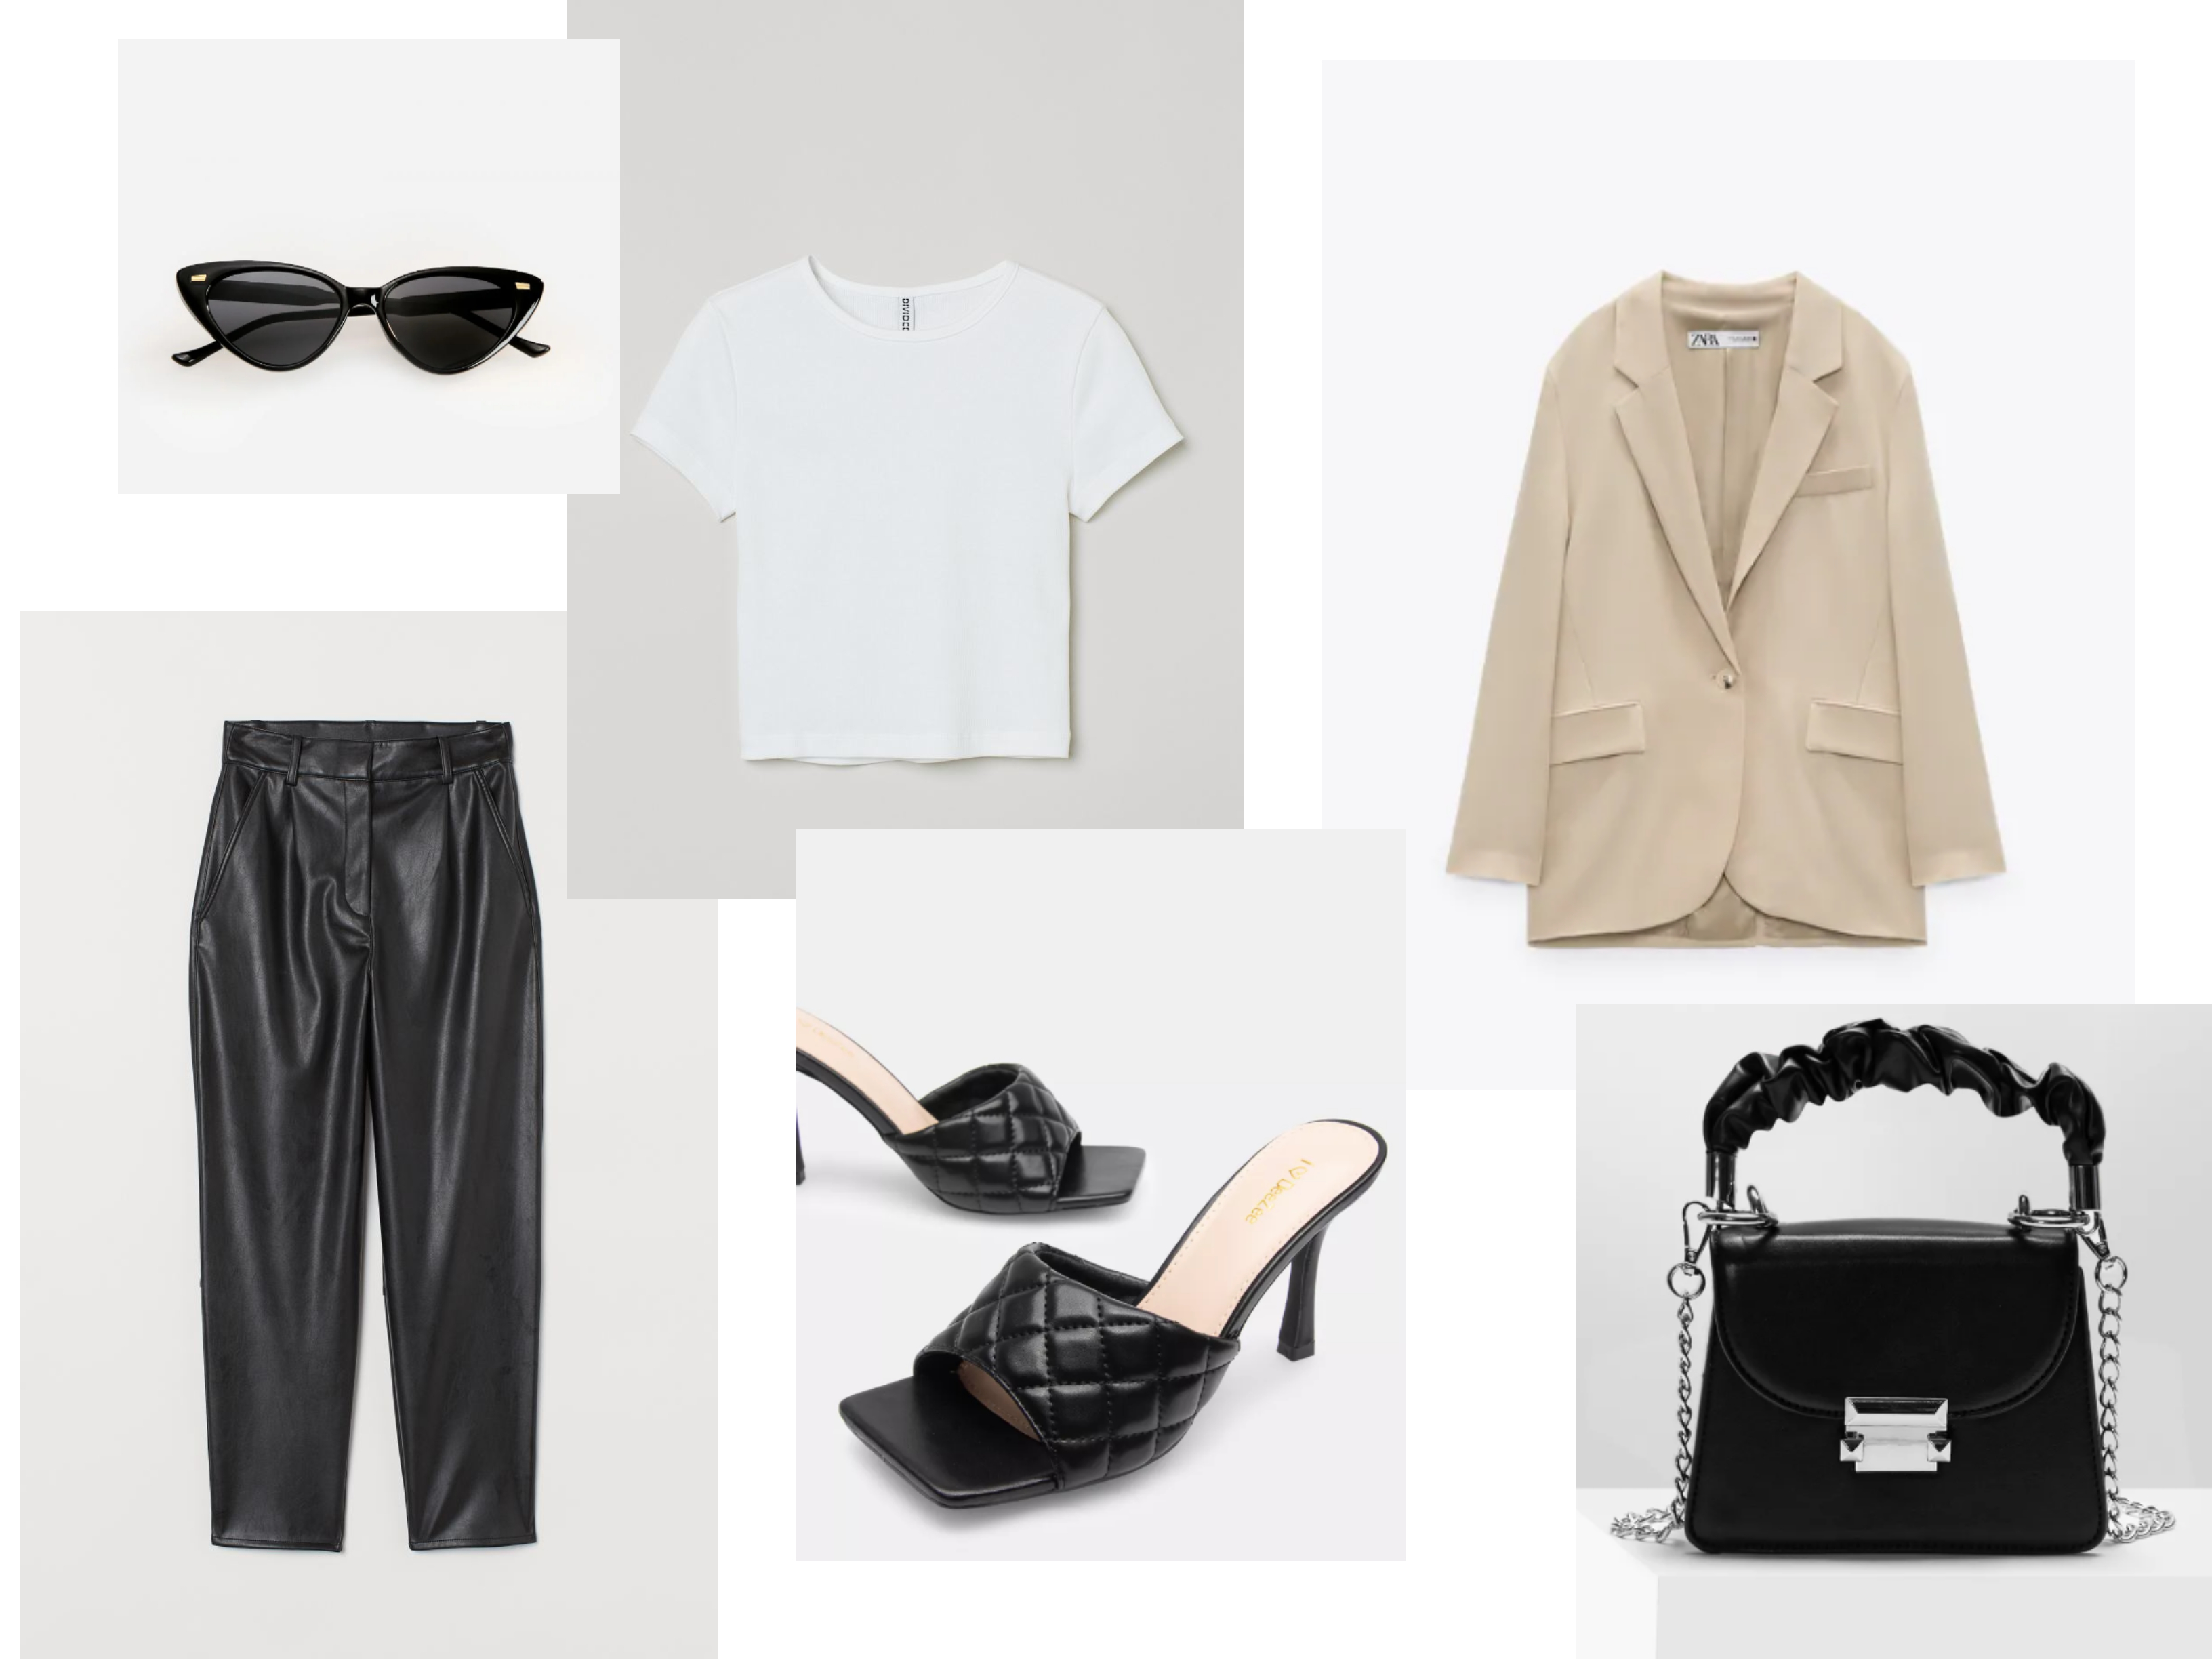 Adrienne 1 outfit